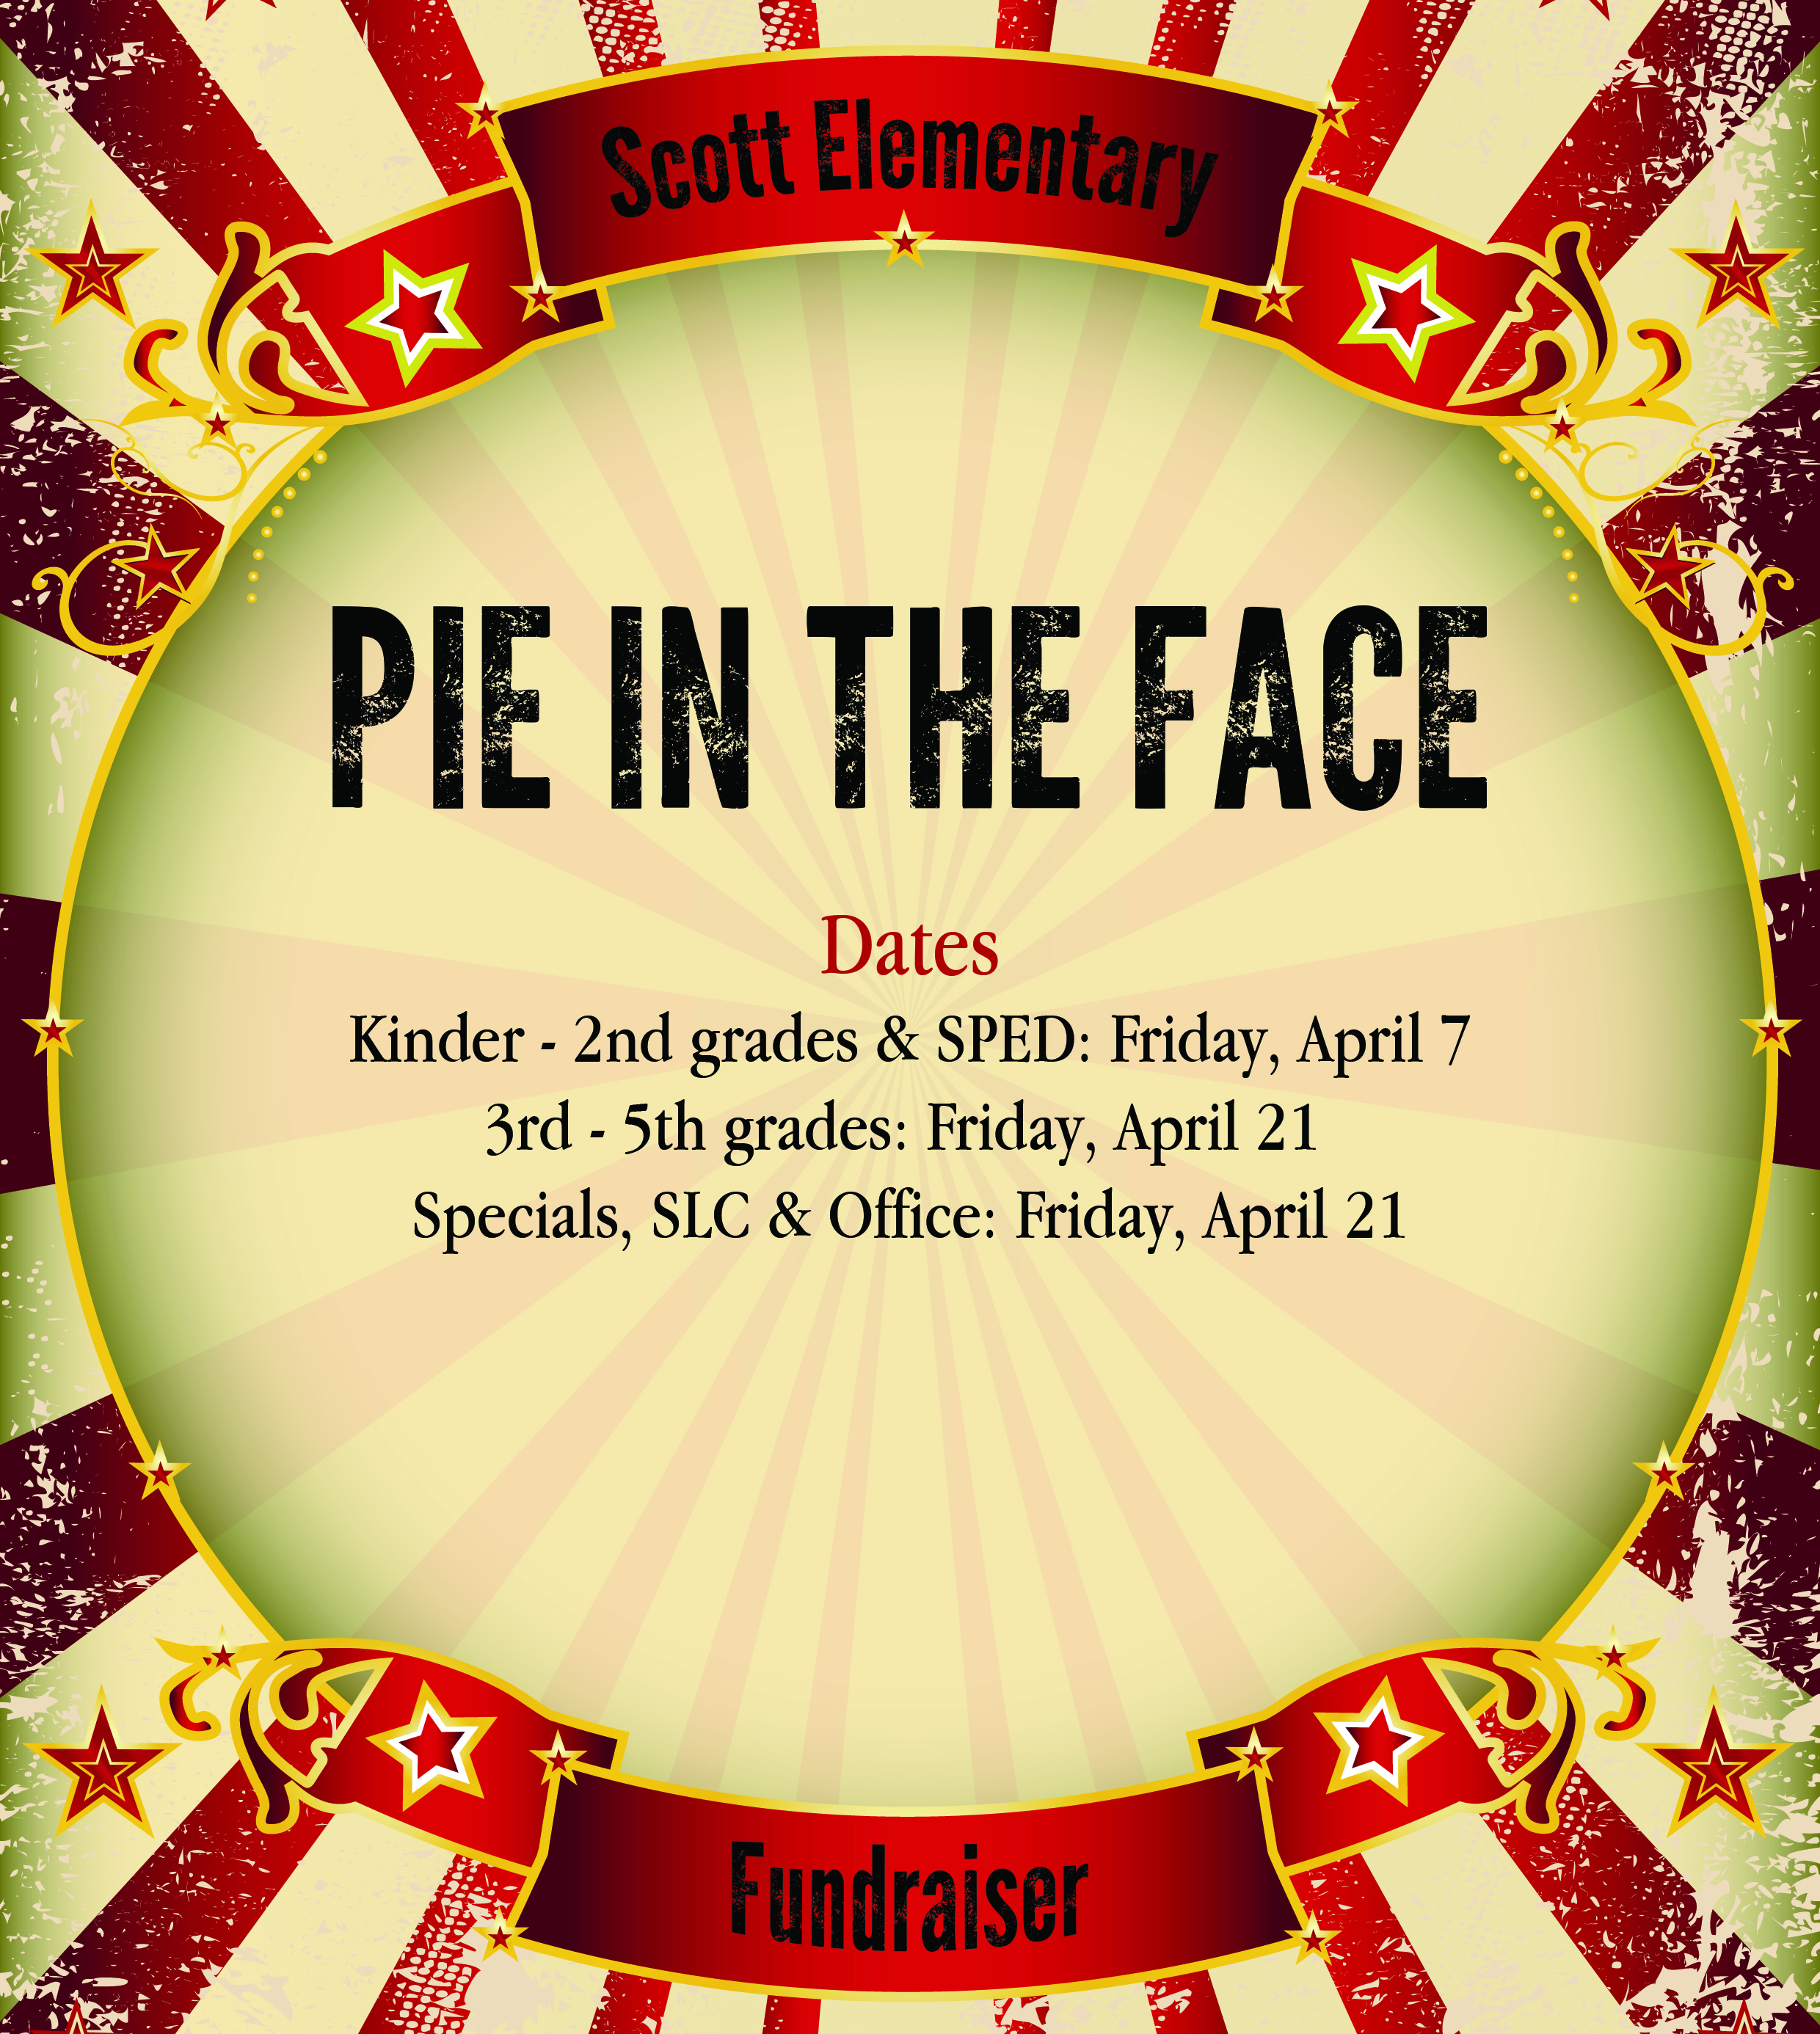 Pie in the Face dates